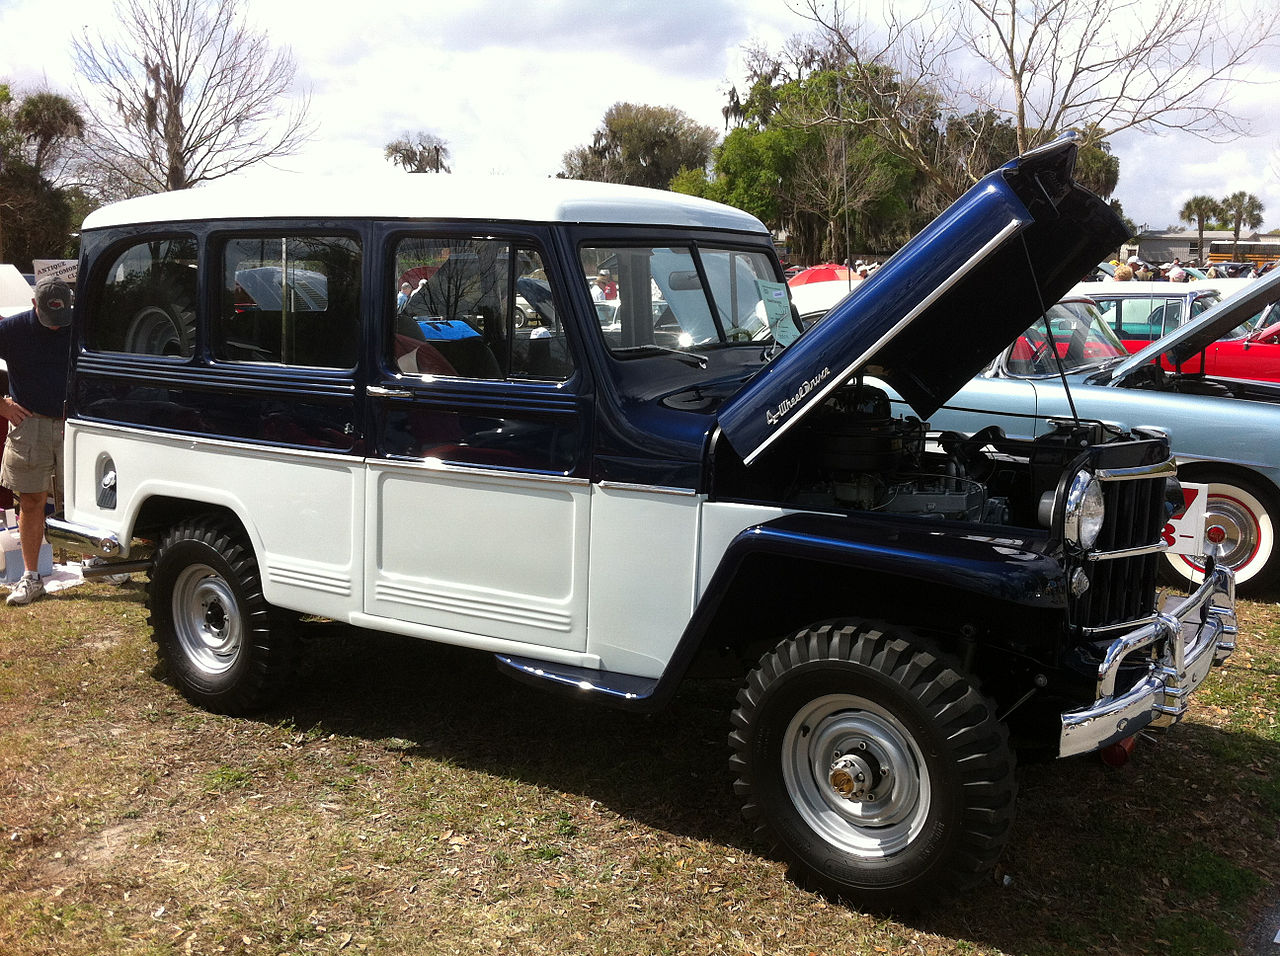 Willys Fc 170 For Sale >> Willys Jeep Fc For Sale 1956 1966 | Autos Post